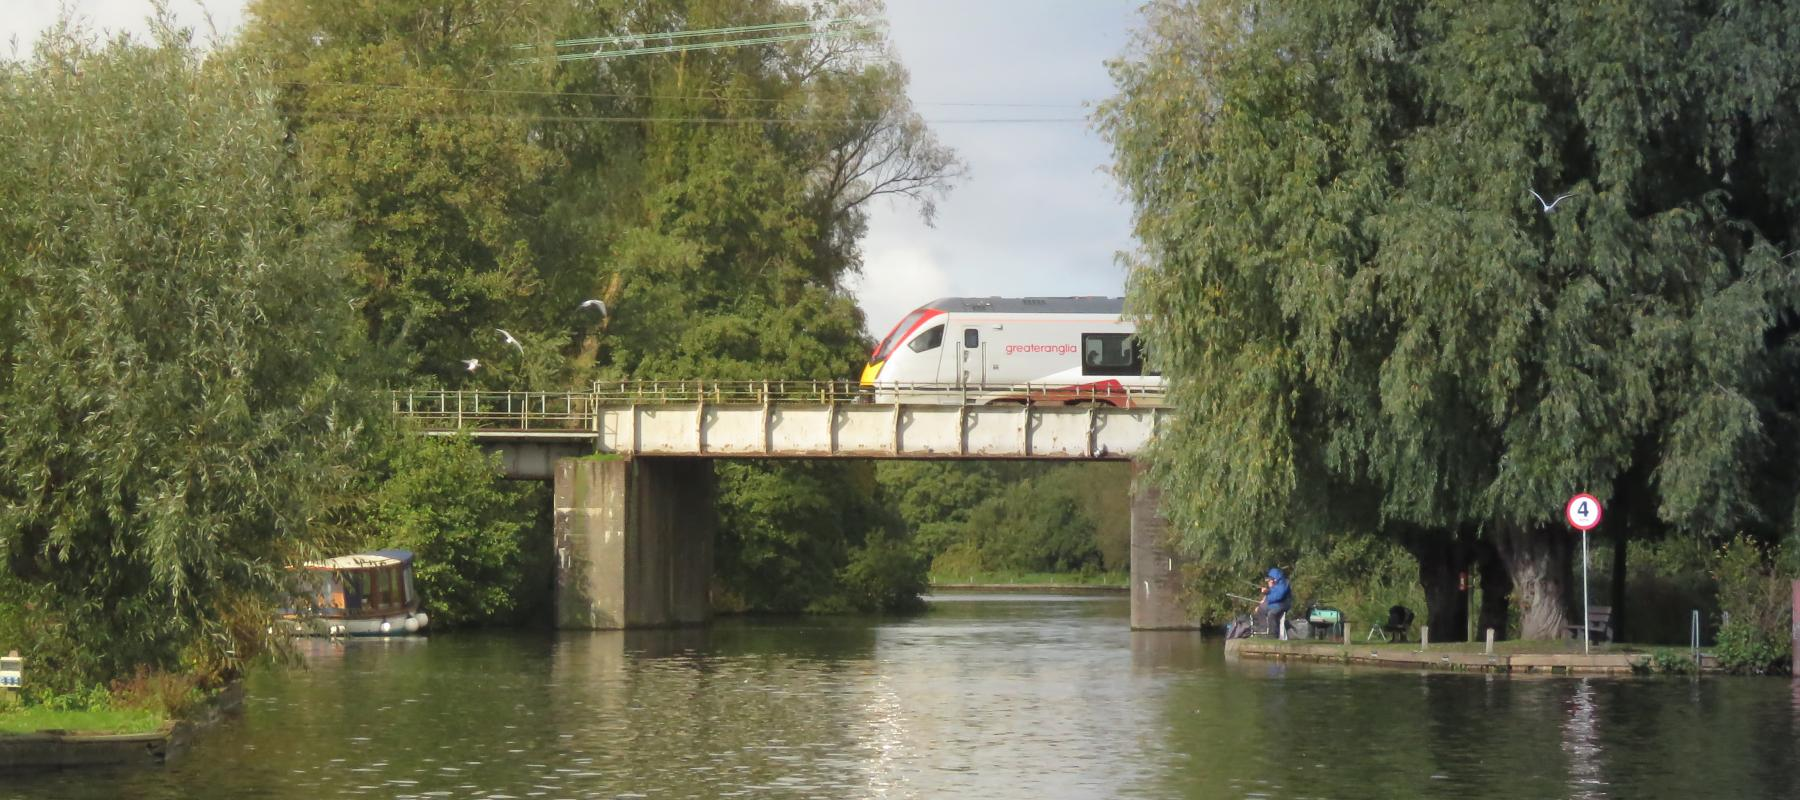 Greater Anglia train crossing the Bure at Wroxham